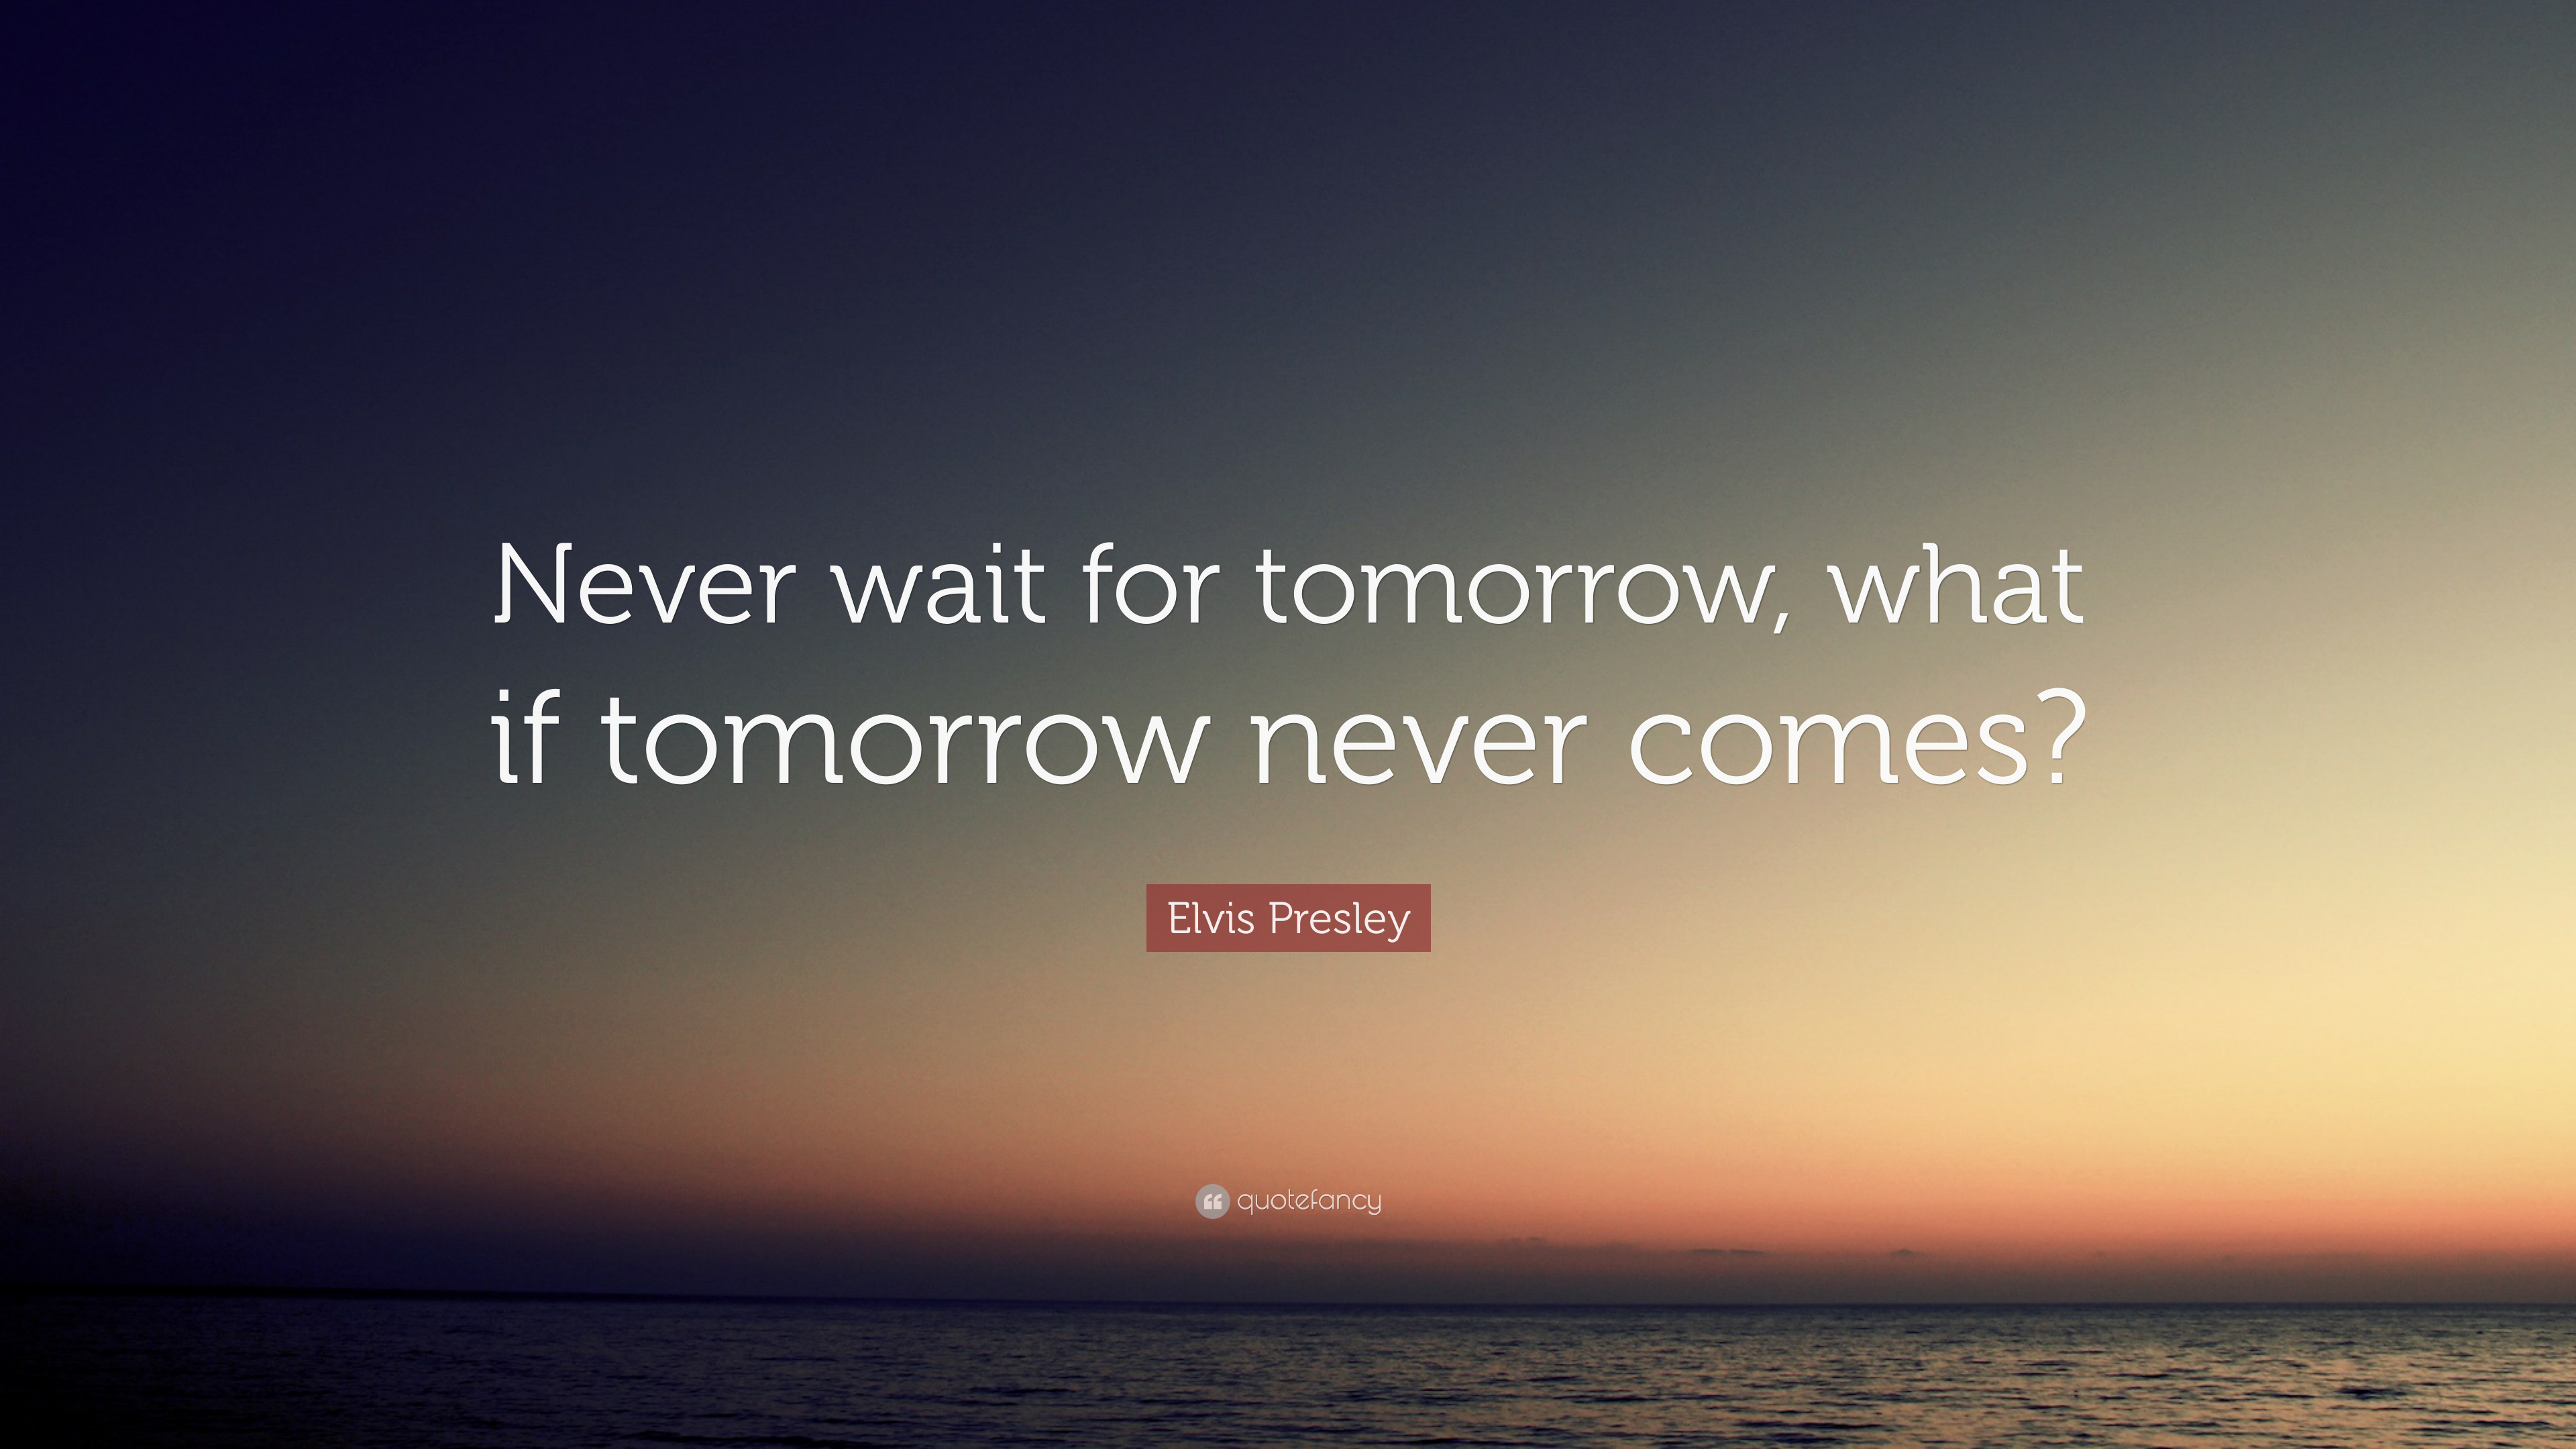 2062489-elvis-presley-quote-never-wait-for-tomorrow-what-if-tomorrow-never